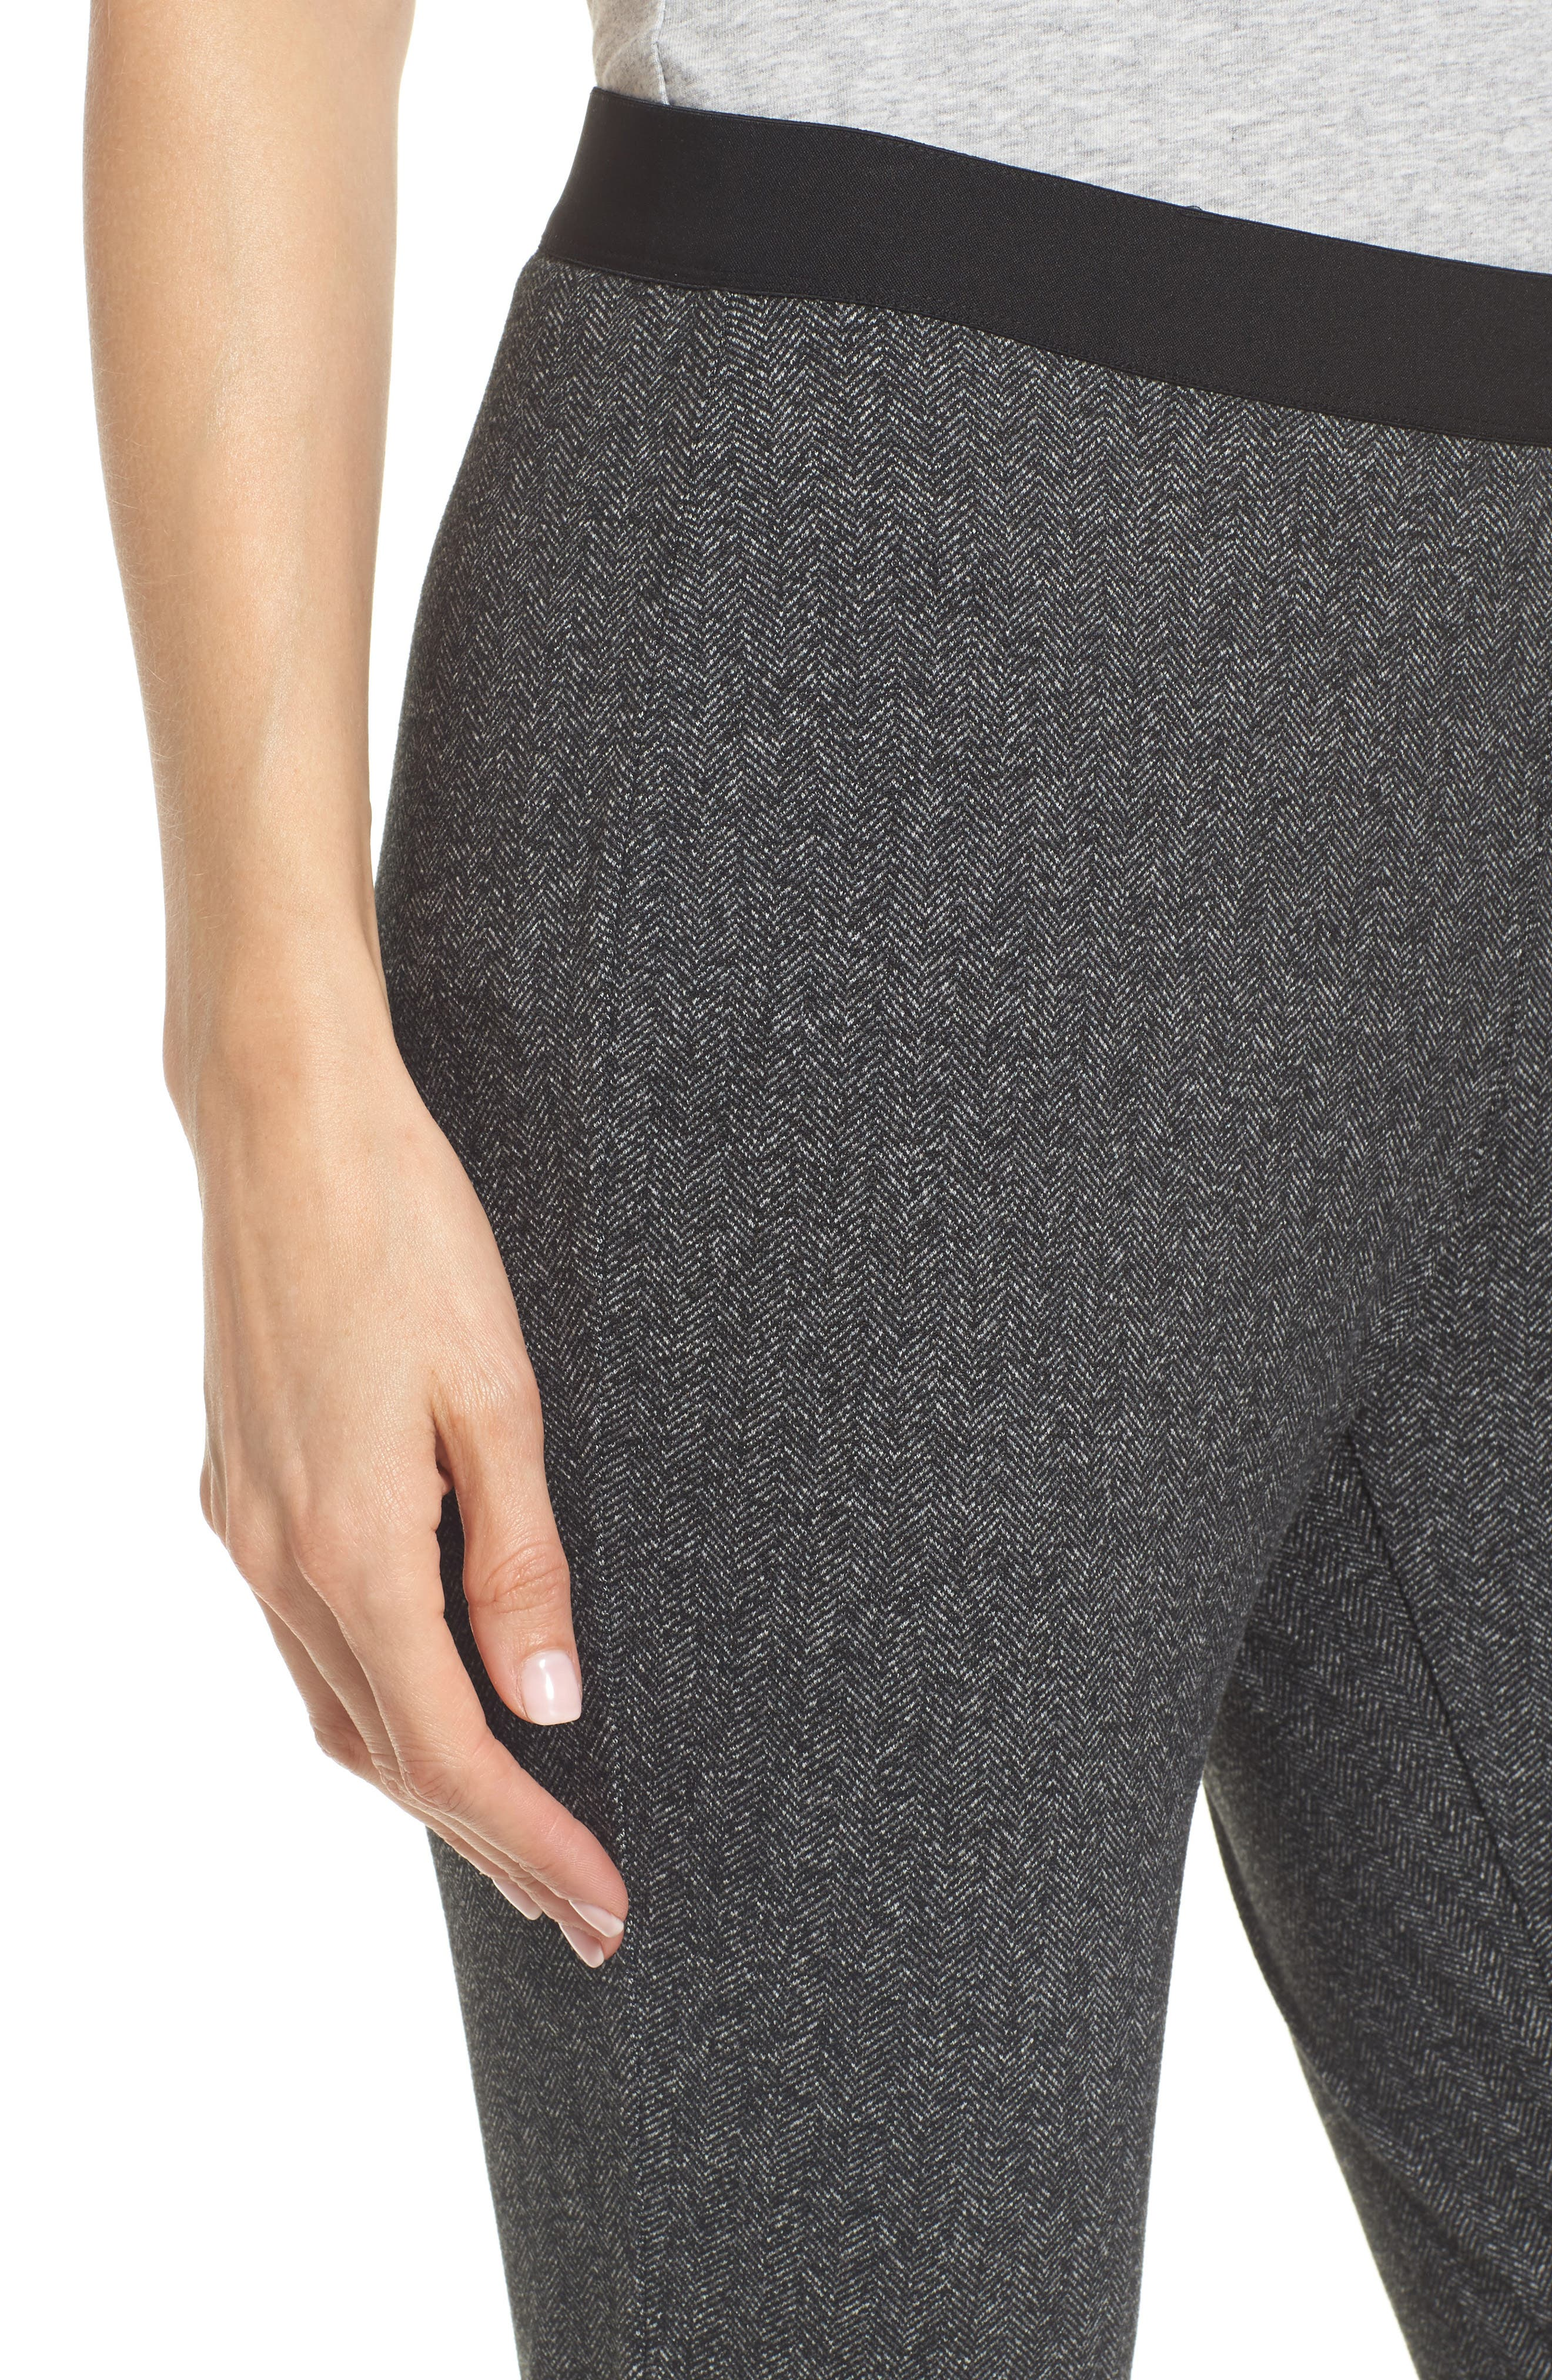 Herringbone Leggings,                             Alternate thumbnail 4, color,                             Charcoal